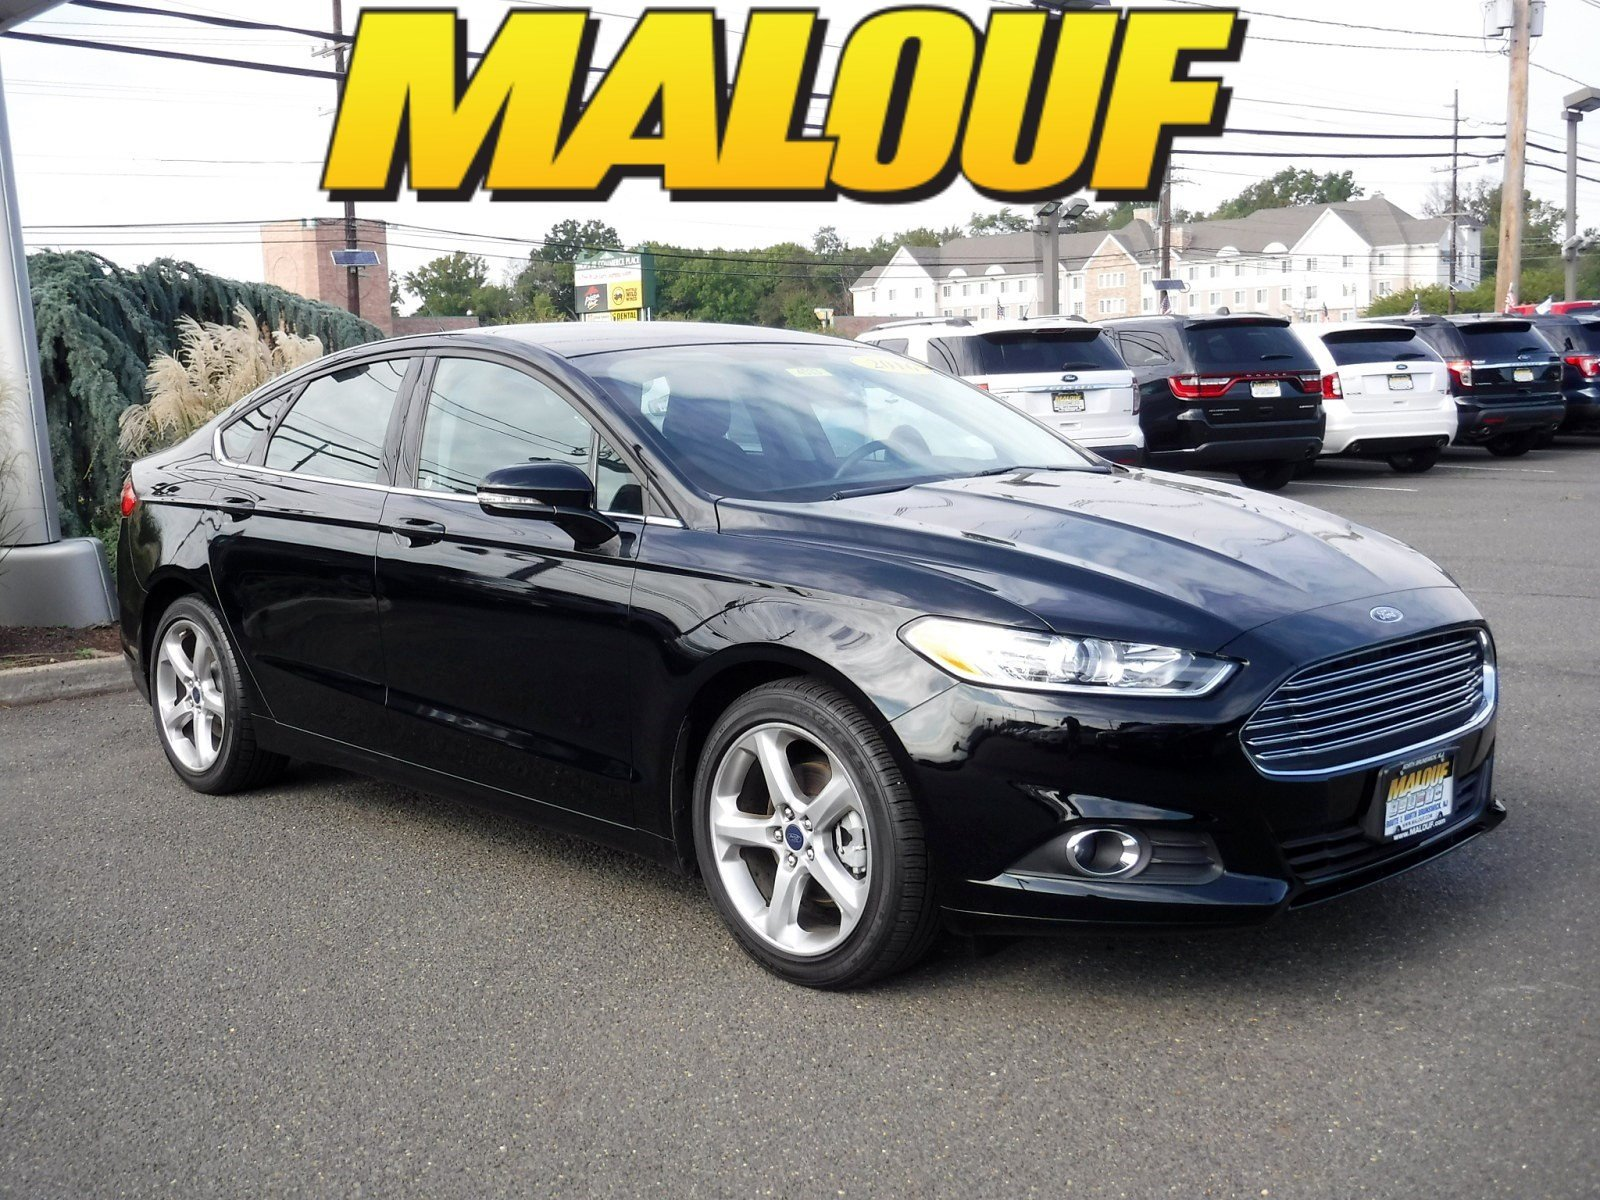 Malouf Ford North Brunswick Nj New Used For Dealership